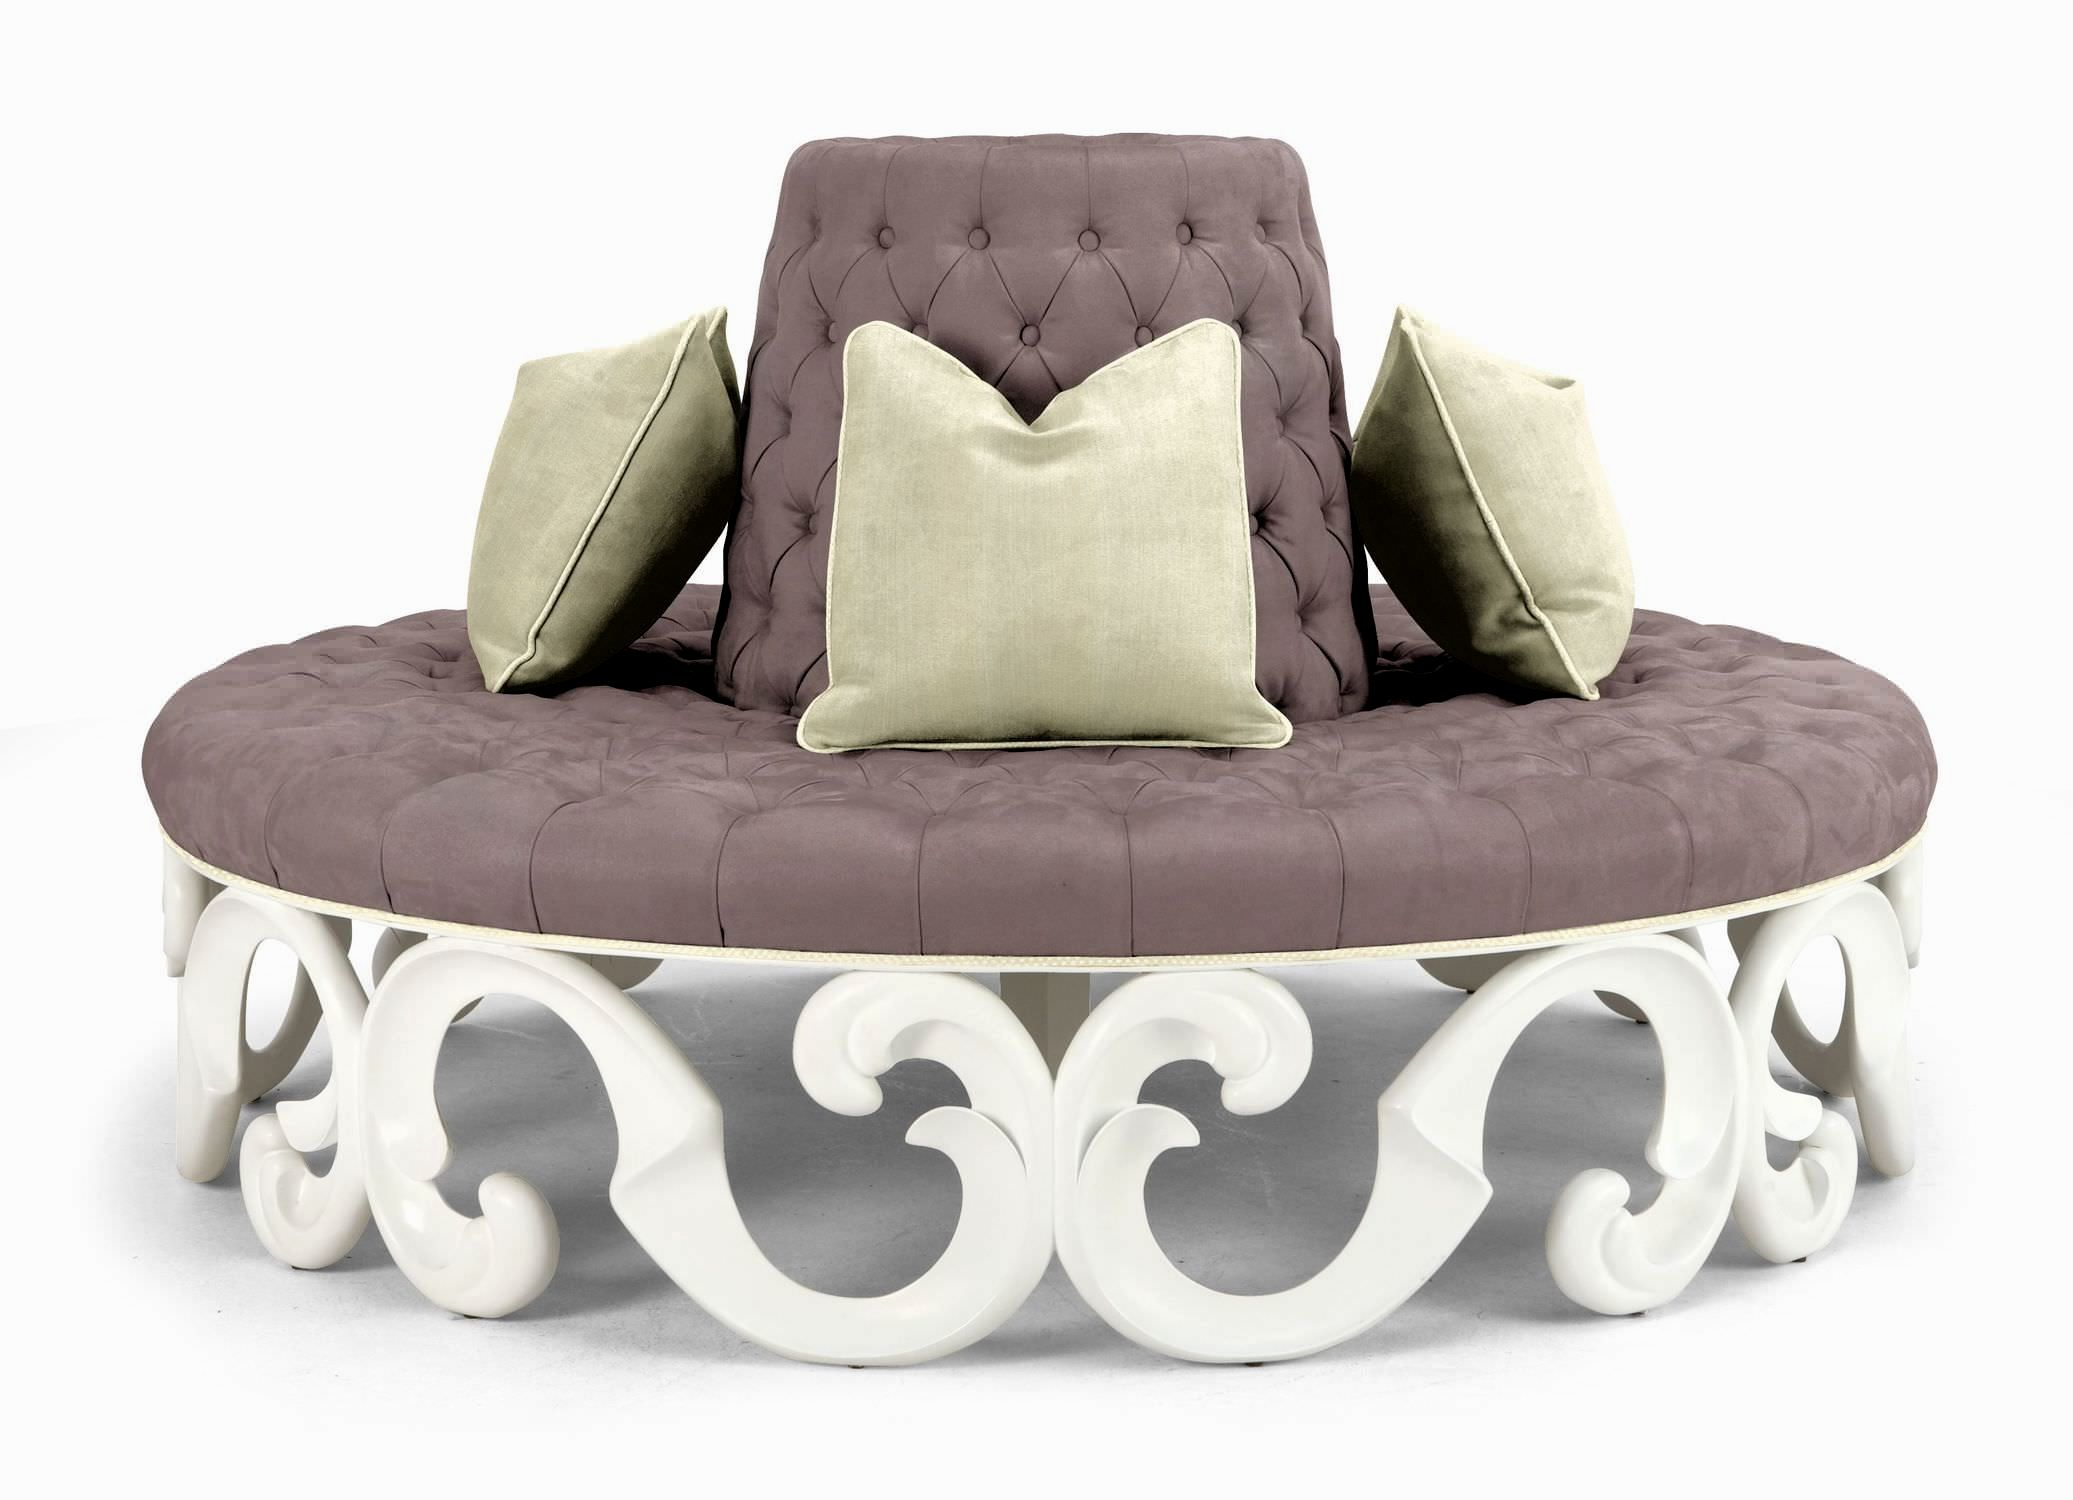 cool sofa bed with chaise concept-Awesome sofa Bed with Chaise Inspiration